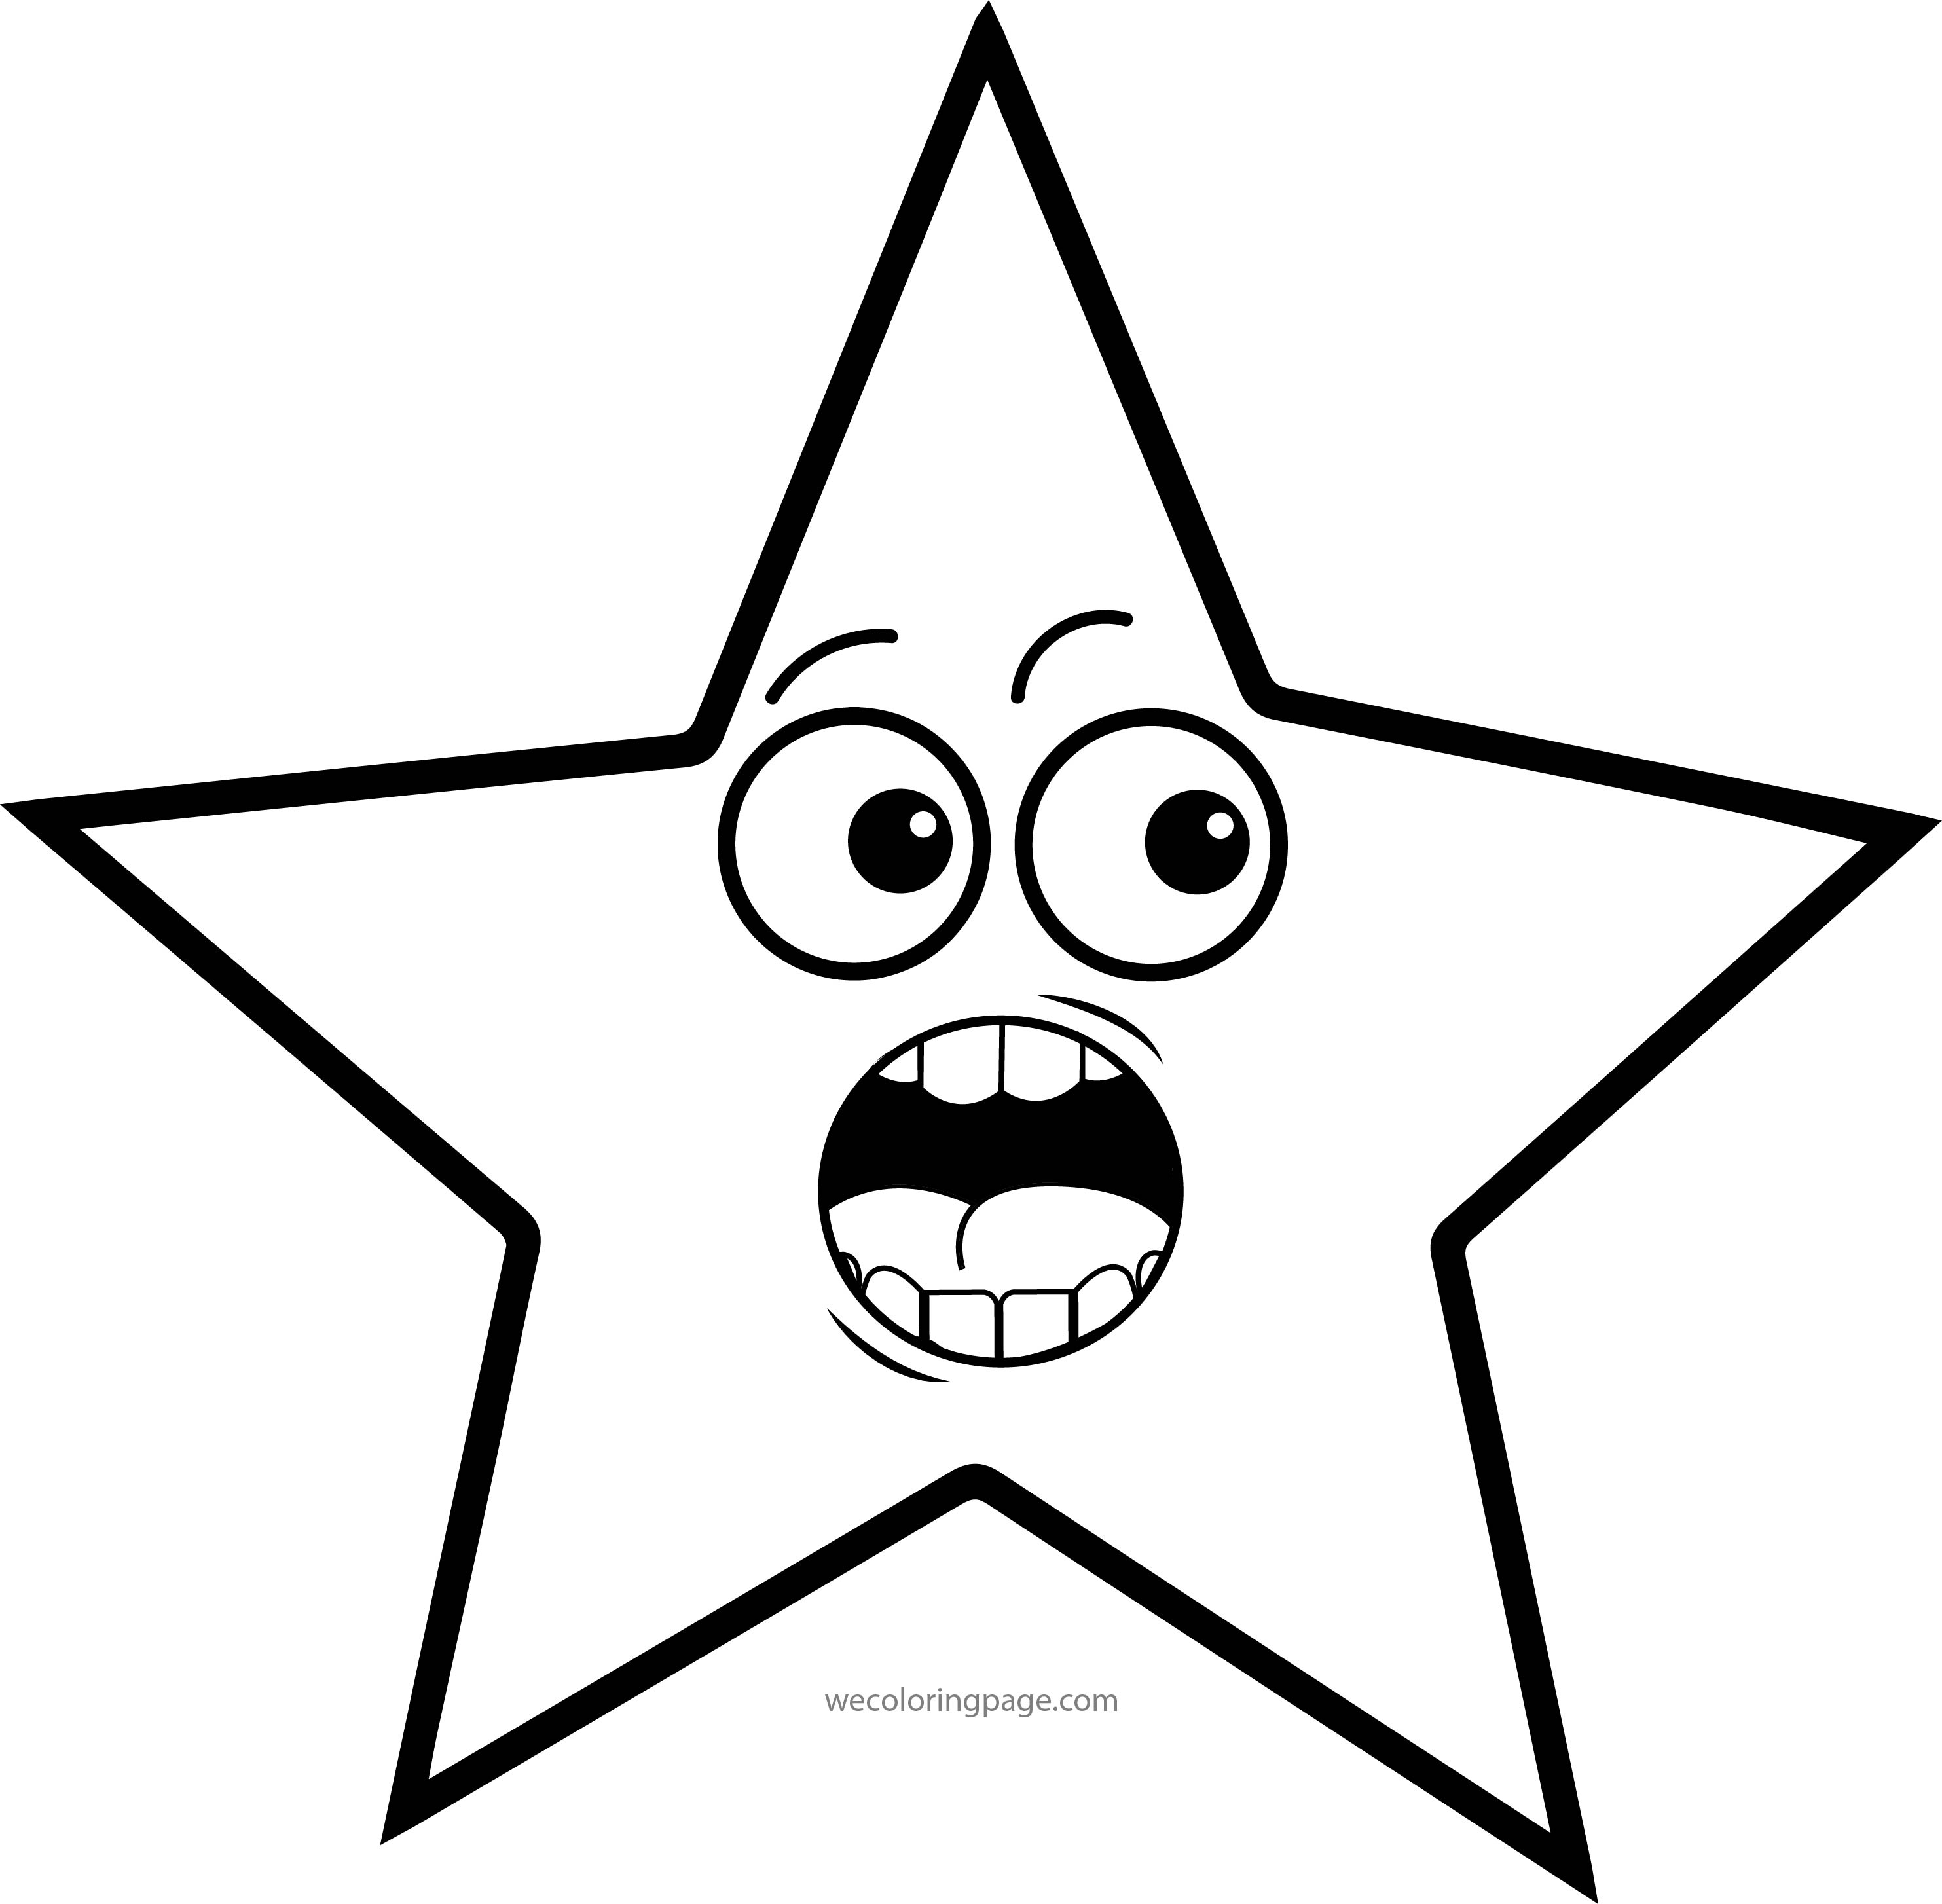 Stars Coloring Pages Wecoloringpage